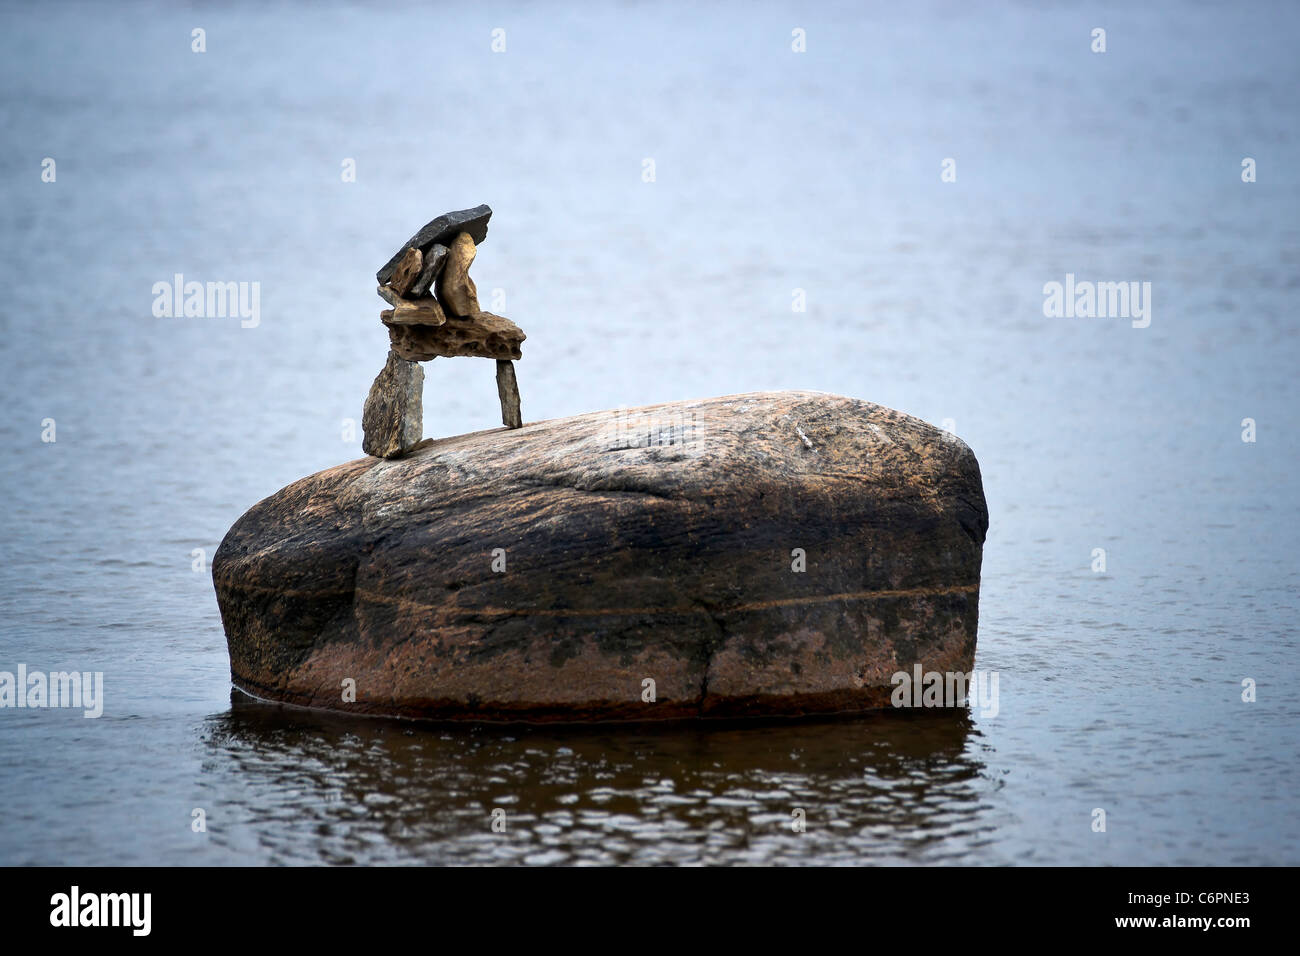 A small inuksuk (inuckshuk) sits on top of a lone boulder in surrounding water. - Stock Image